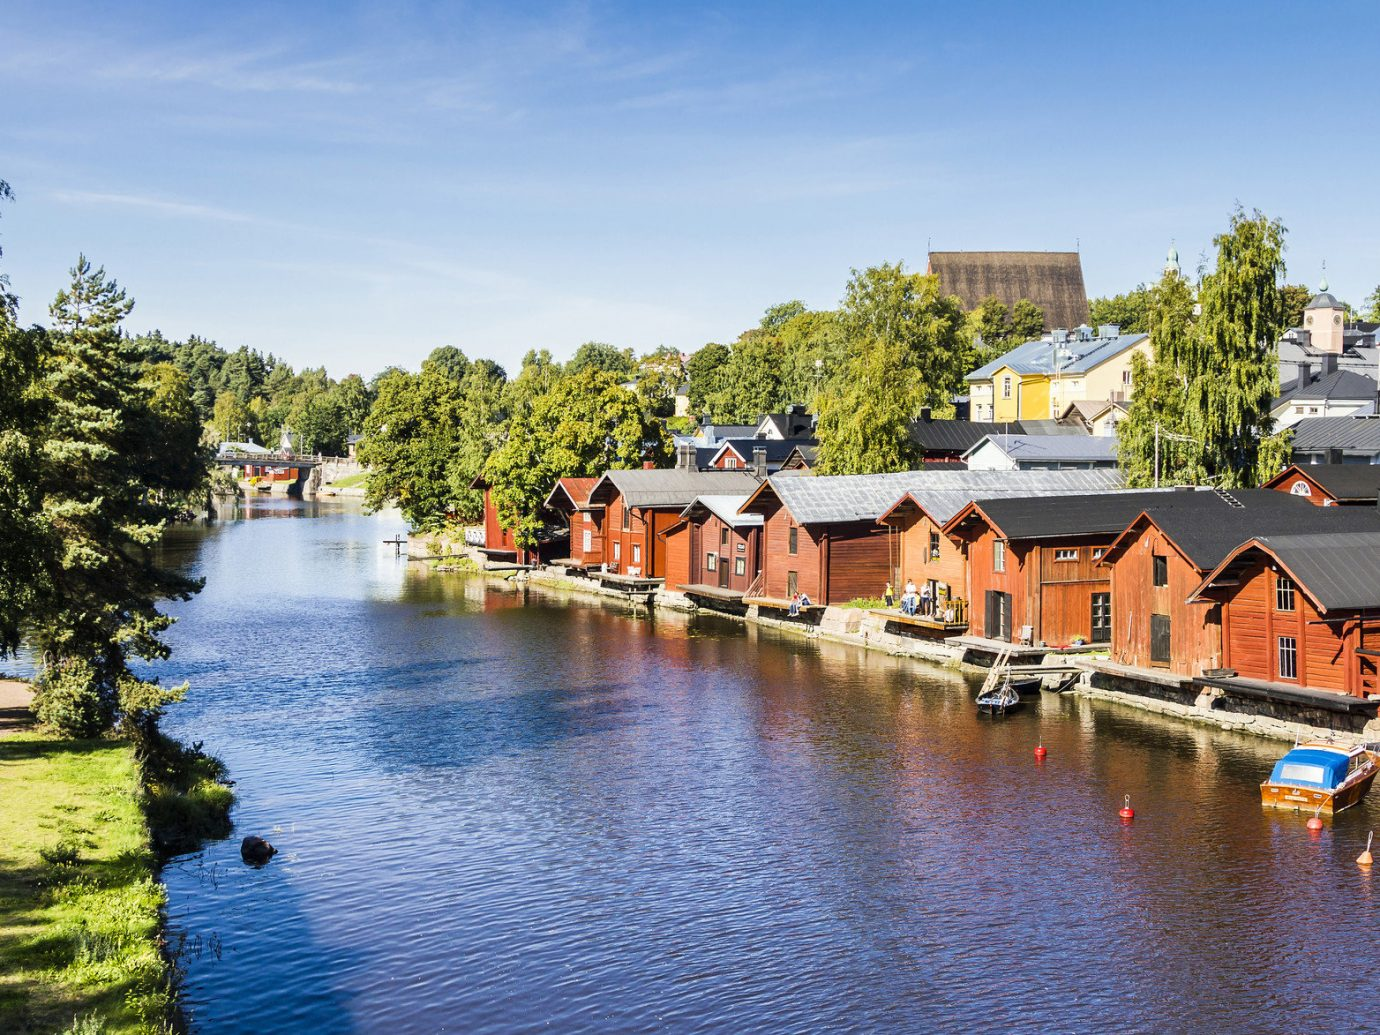 City dock Finland houses path River trees Trip Ideas water outdoor tree sky landform body of water Canal Town waterway house reflection Lake pond several